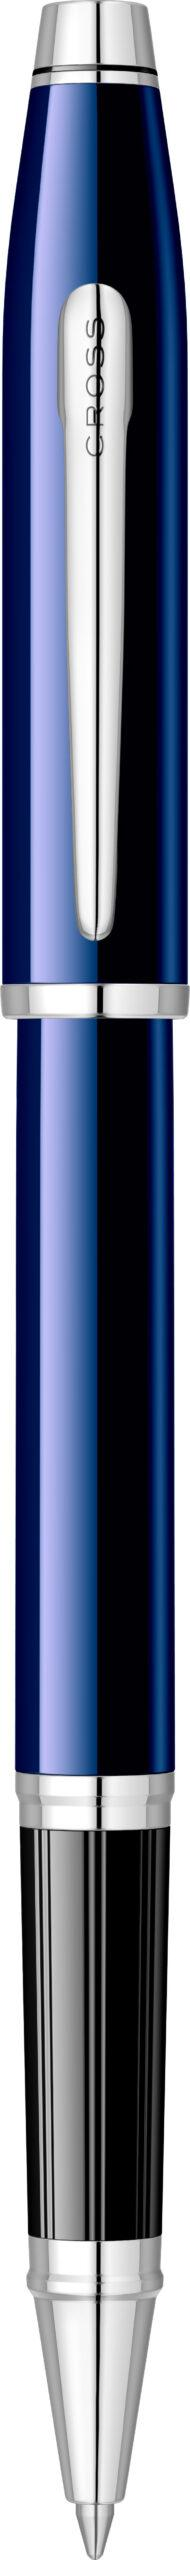 Translucent Blue Lacquer RT Roller - Cross 1